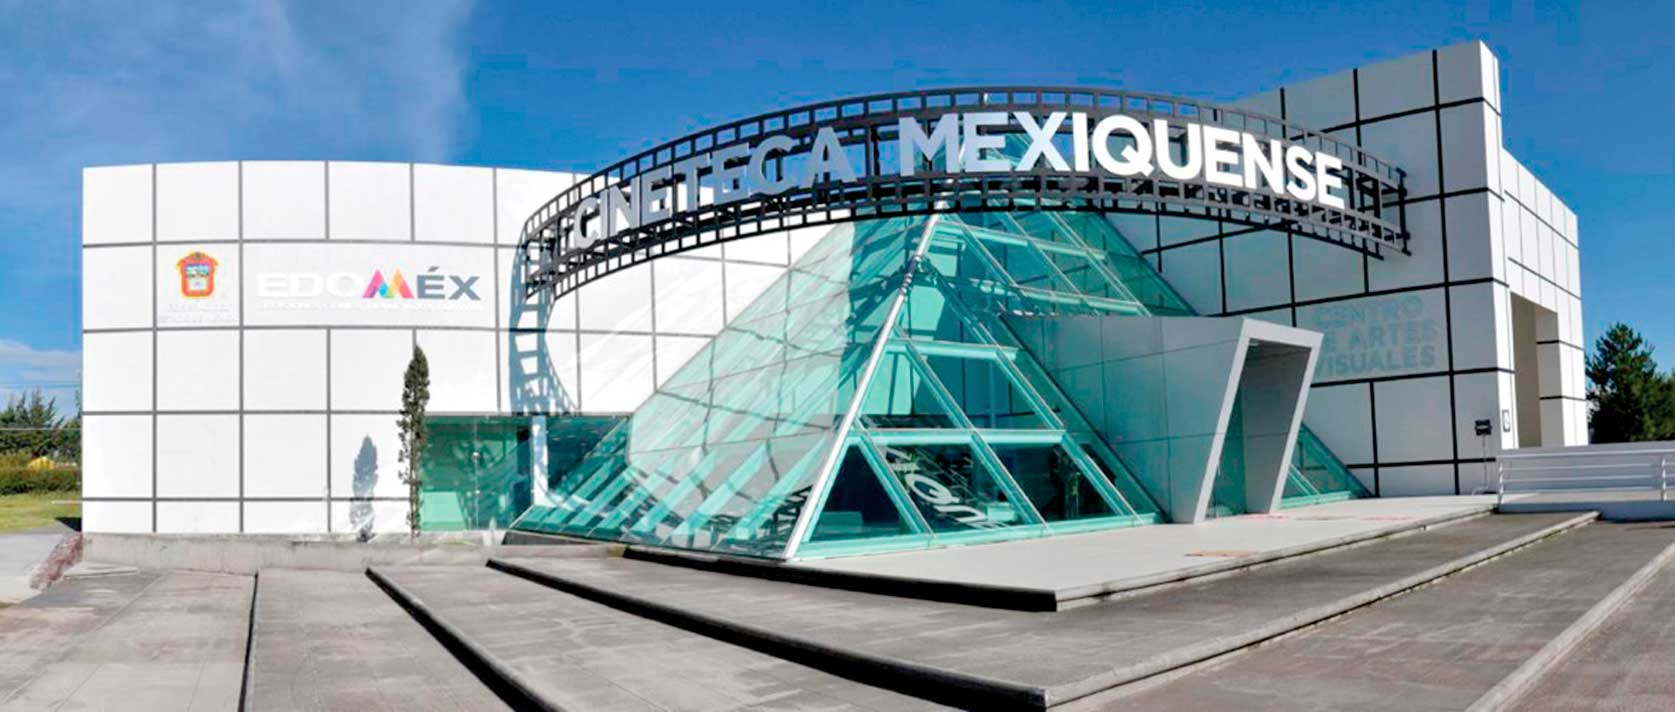 Cineteca Mexiquense Toluca